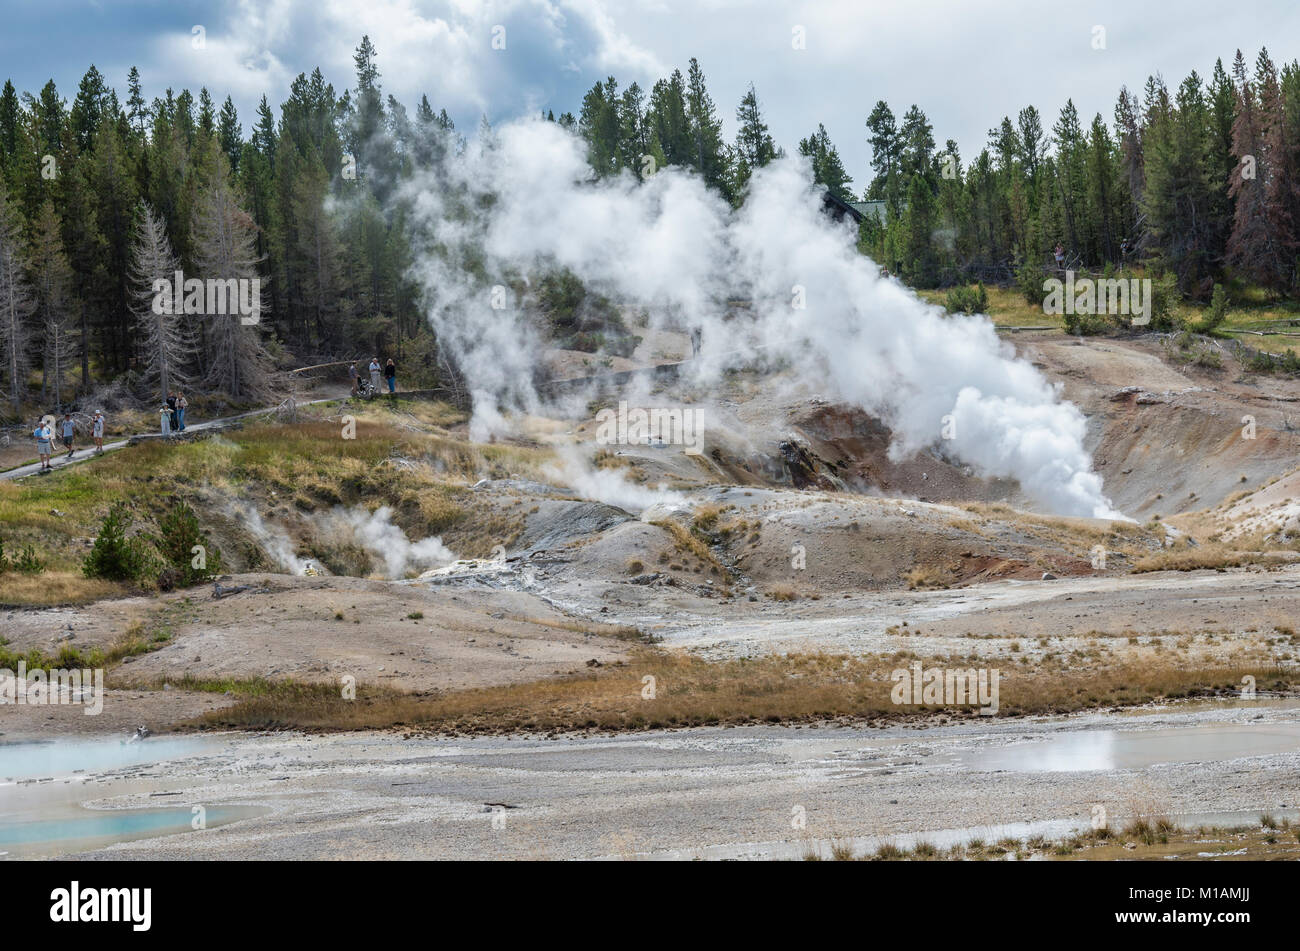 Geysers steaming in the Porcelain Basin area of the Norris Geyser Basin.  Yellowstone National Park, Wyoming USA - Stock Image